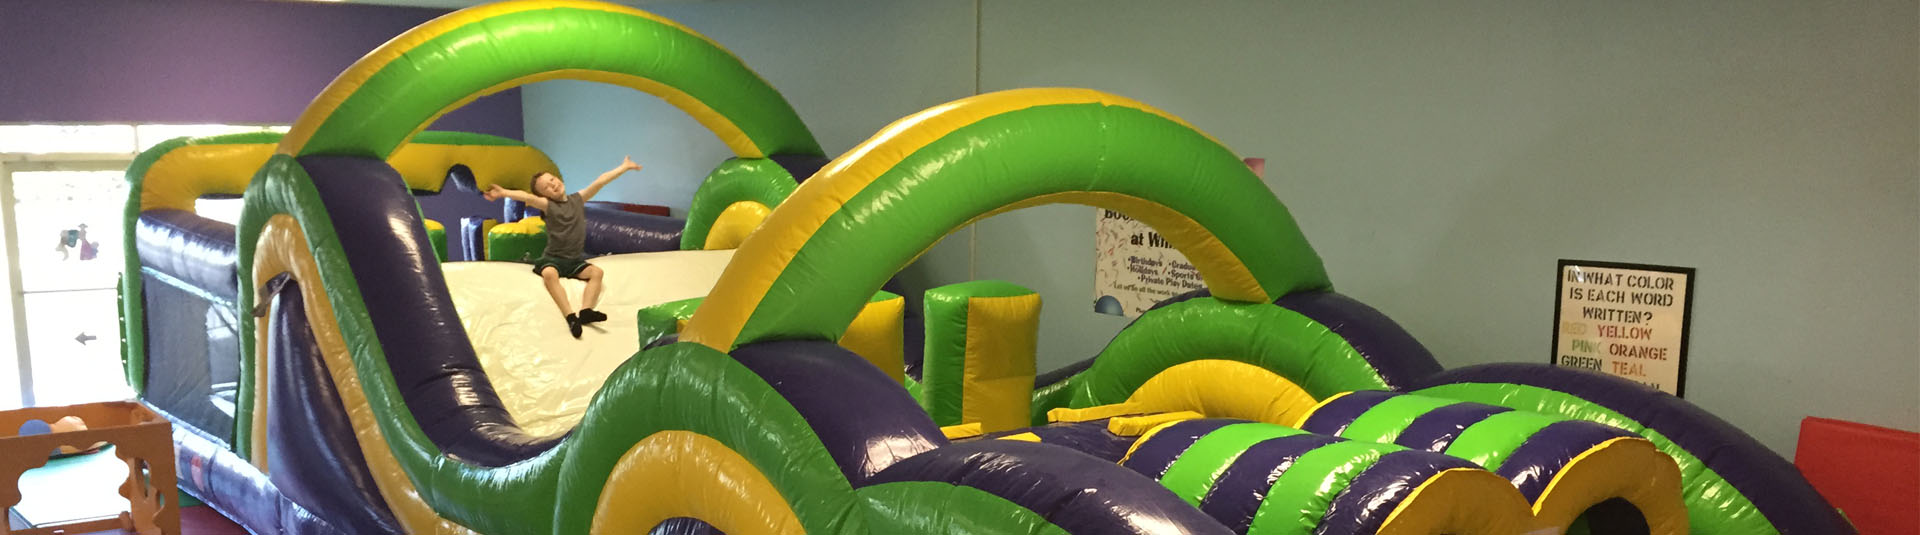 obstacle course | Whiz Kids Play Zone & Party Place - Naples, Florida